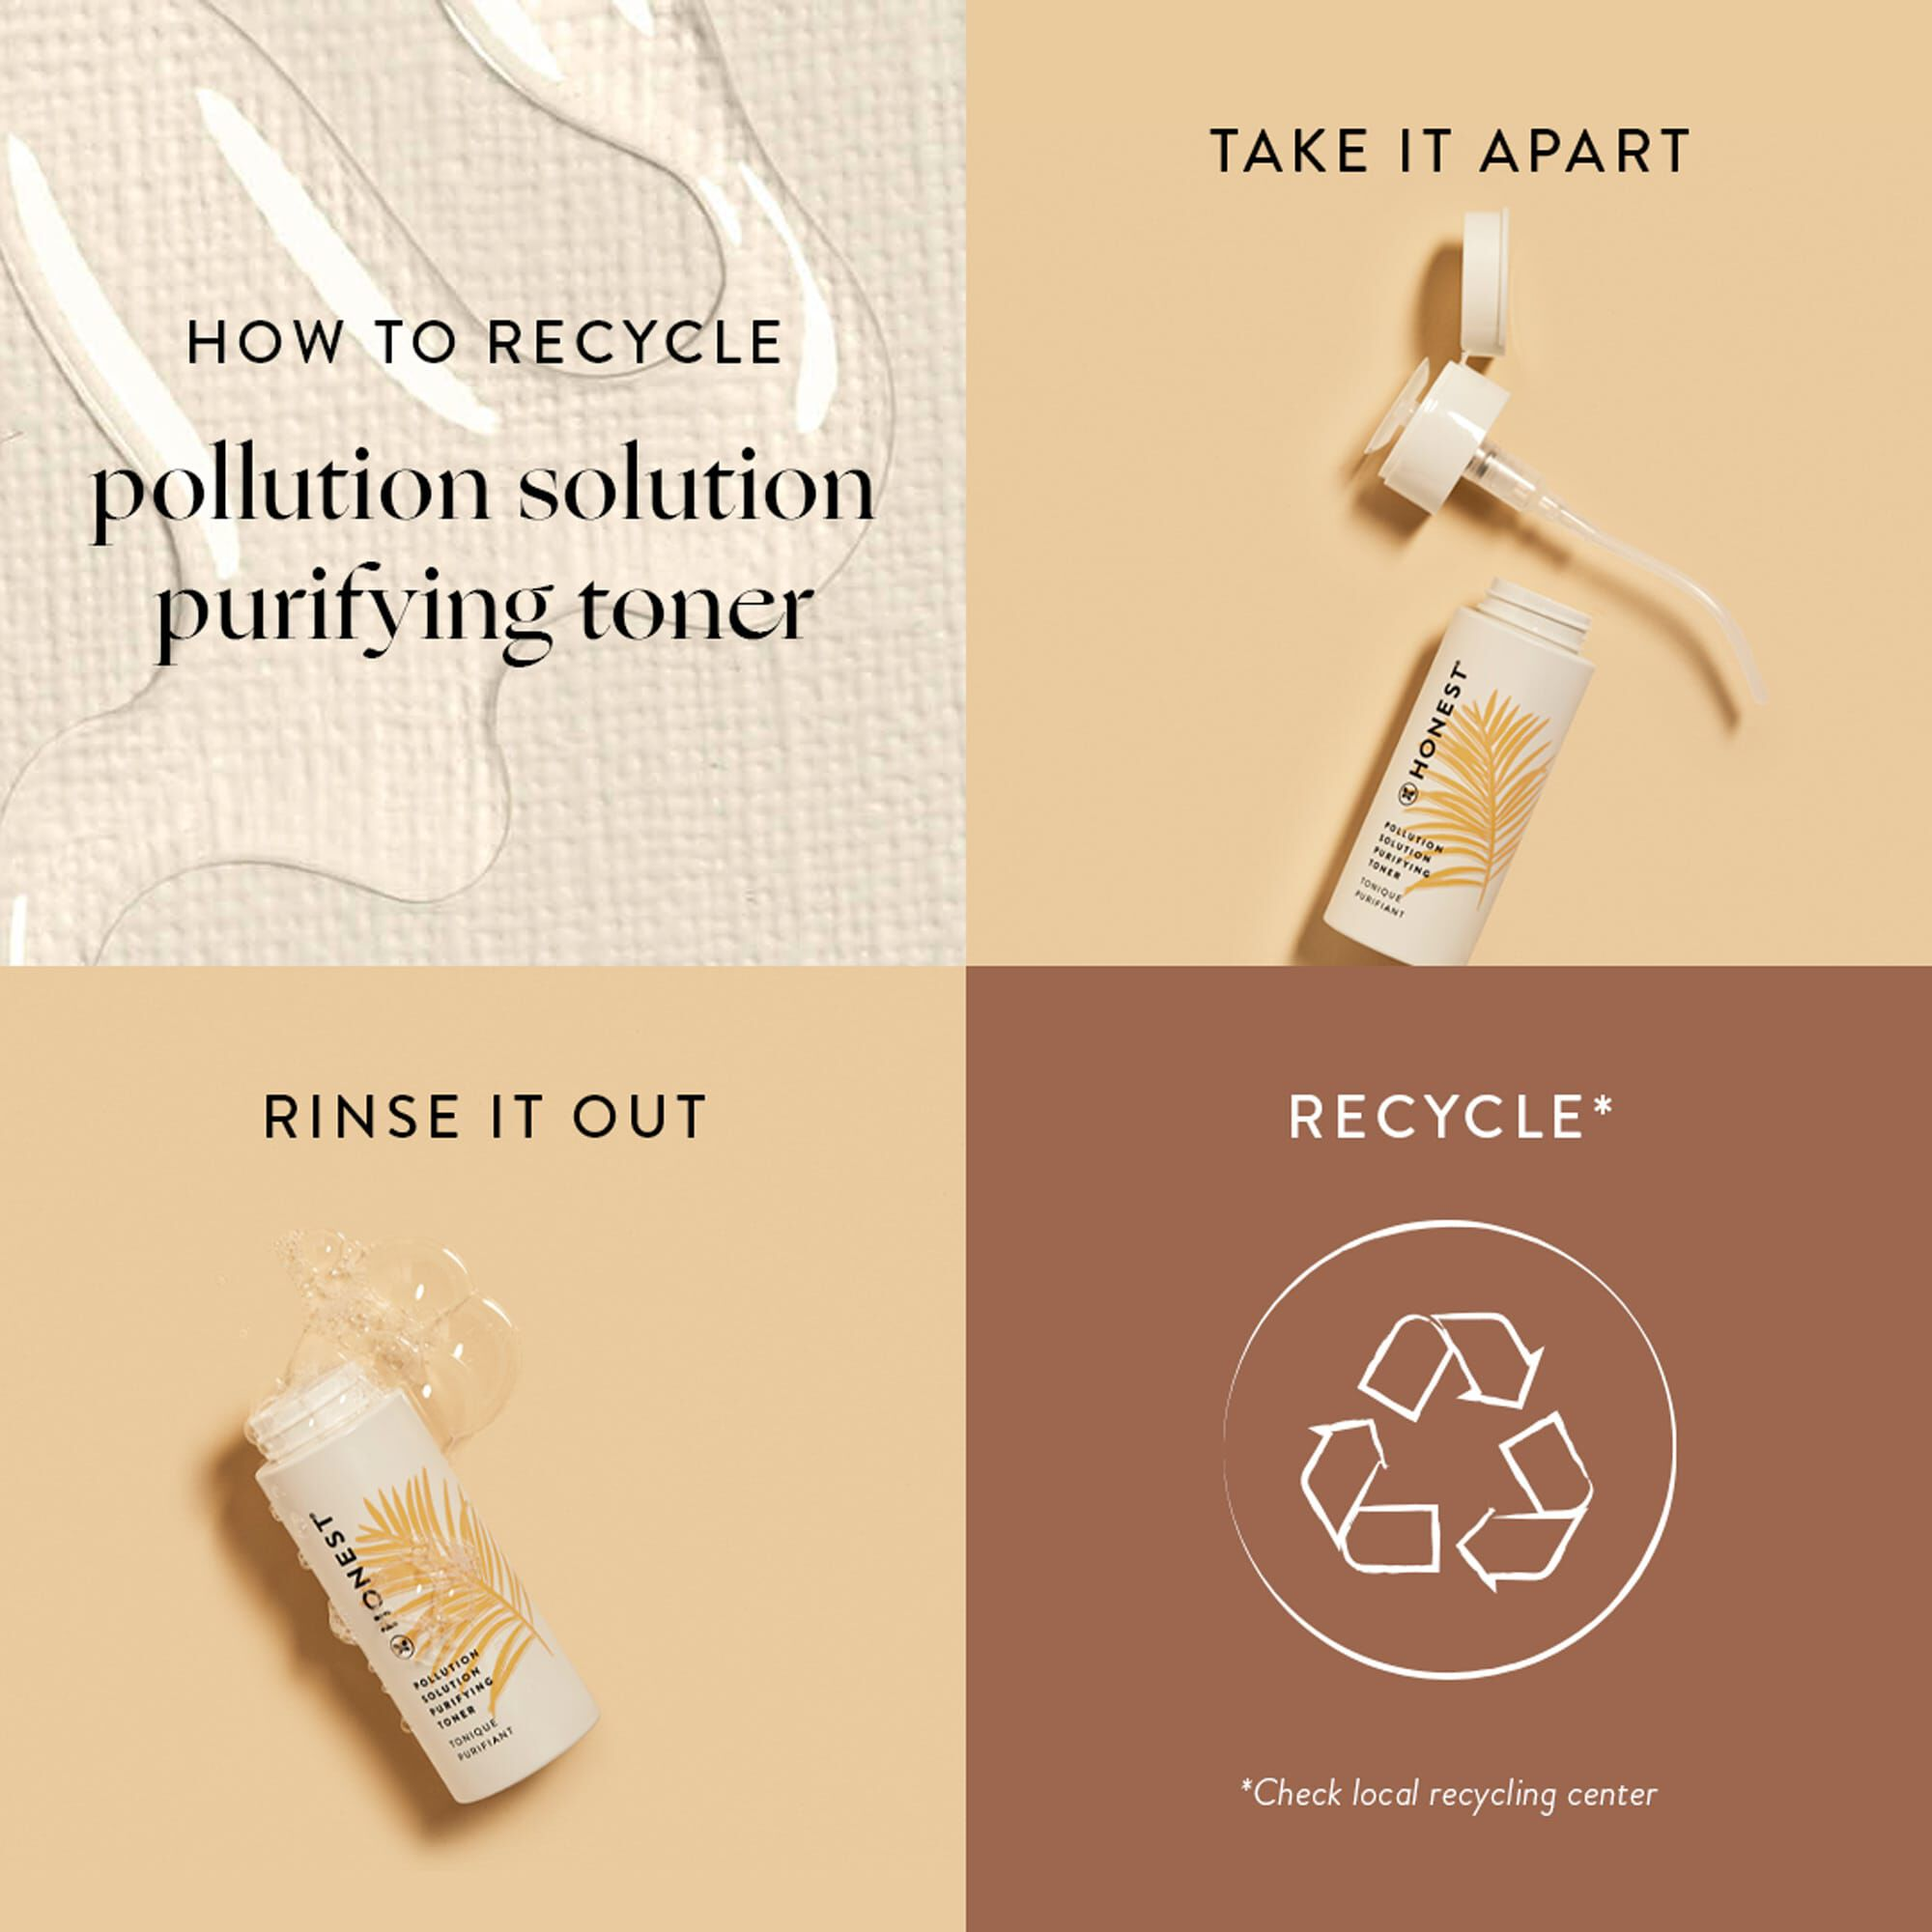 Pollution Solution Purifying Toner